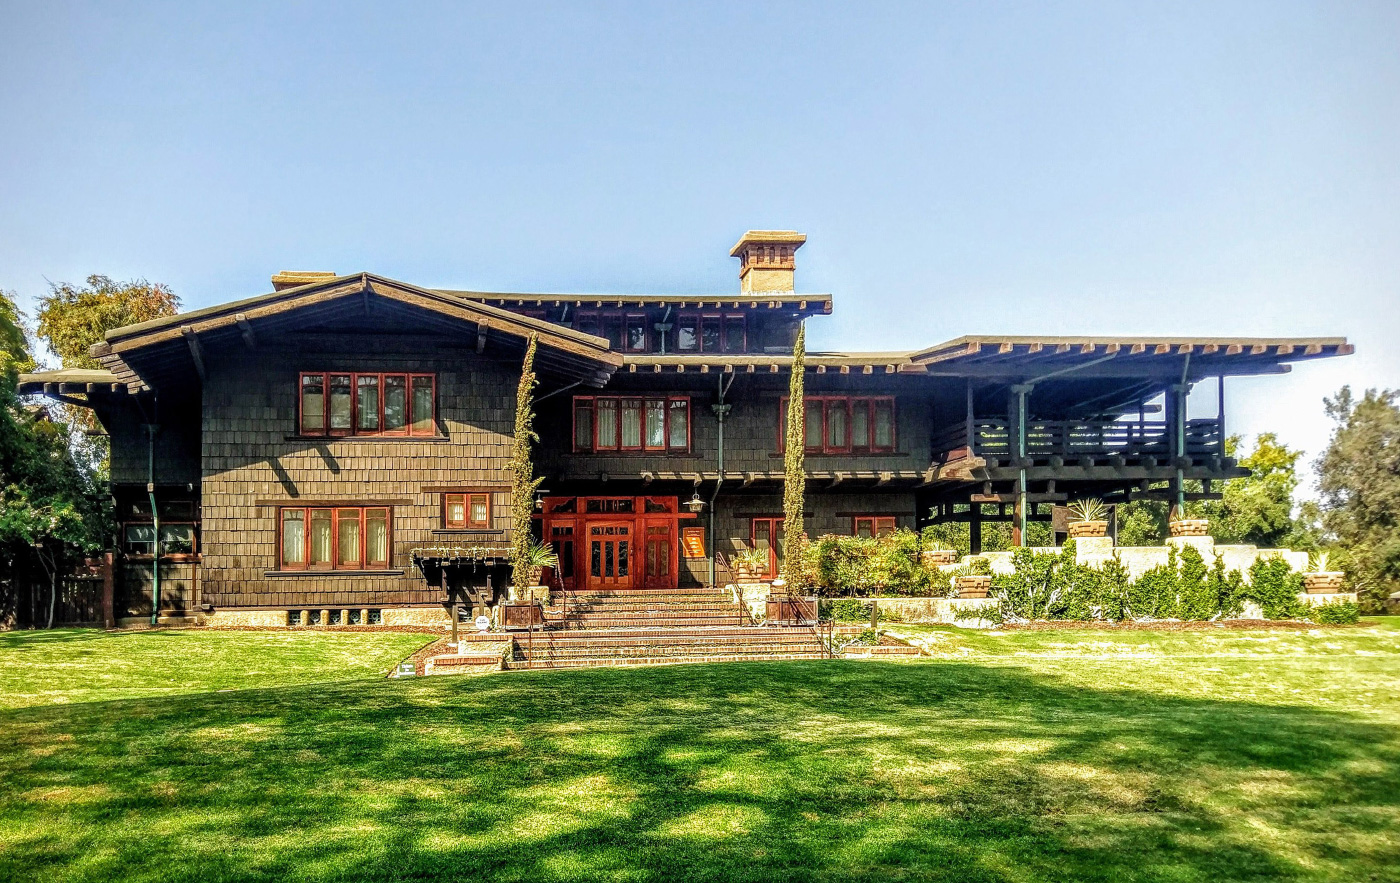 Photo of a Craftsman style home, the Gamble House